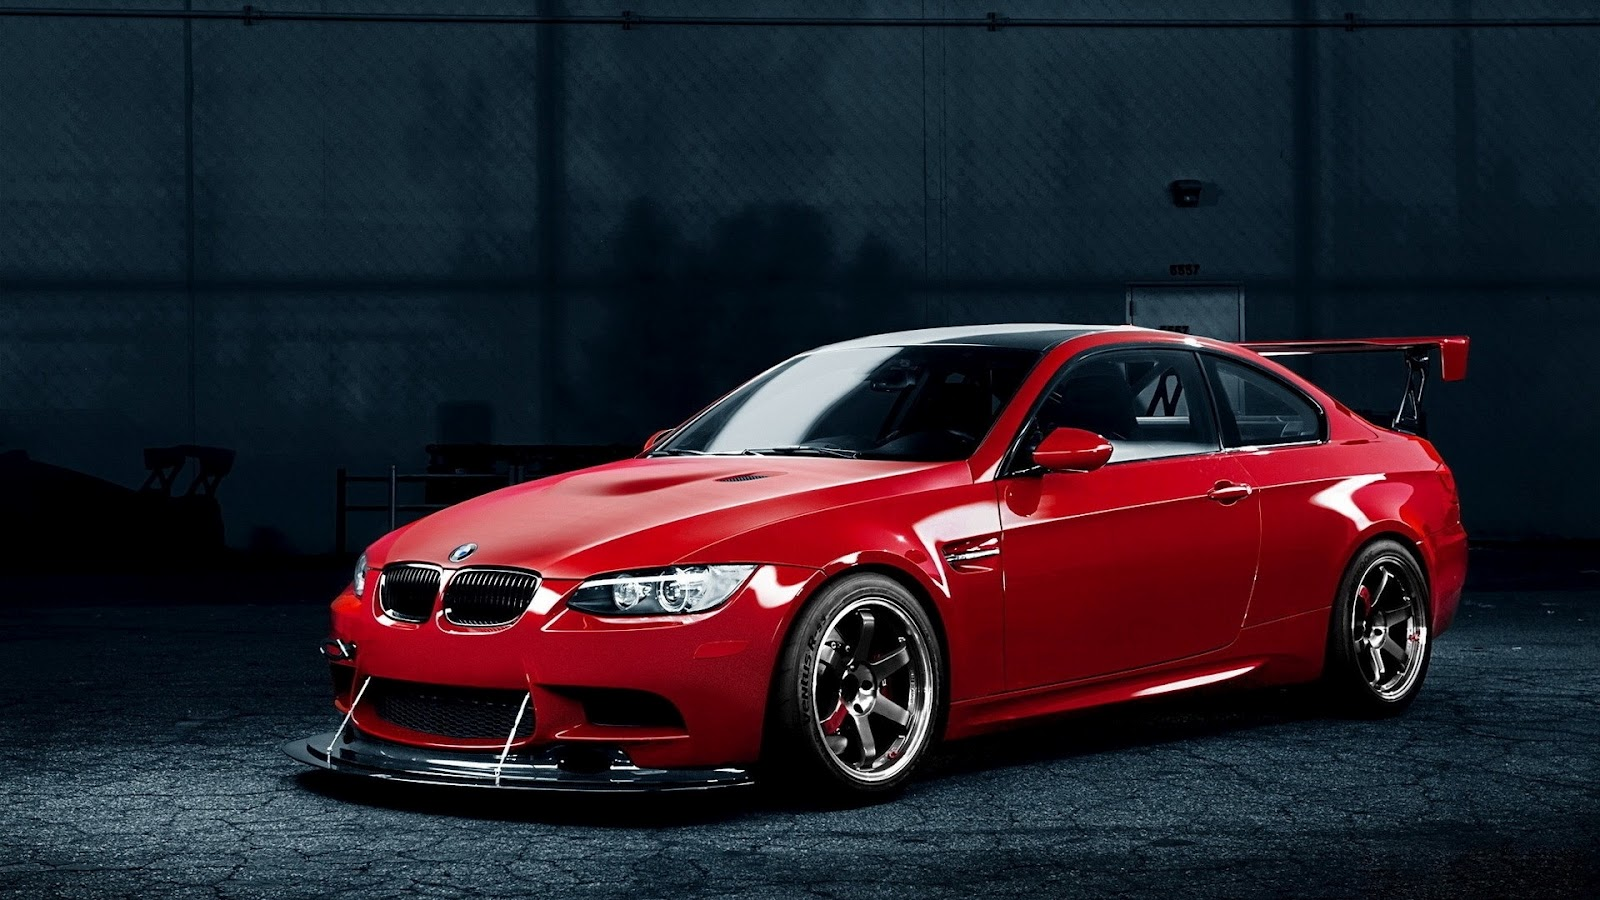 Hd Wallpapers Bmw M3 Wallpapers HD 1600x900